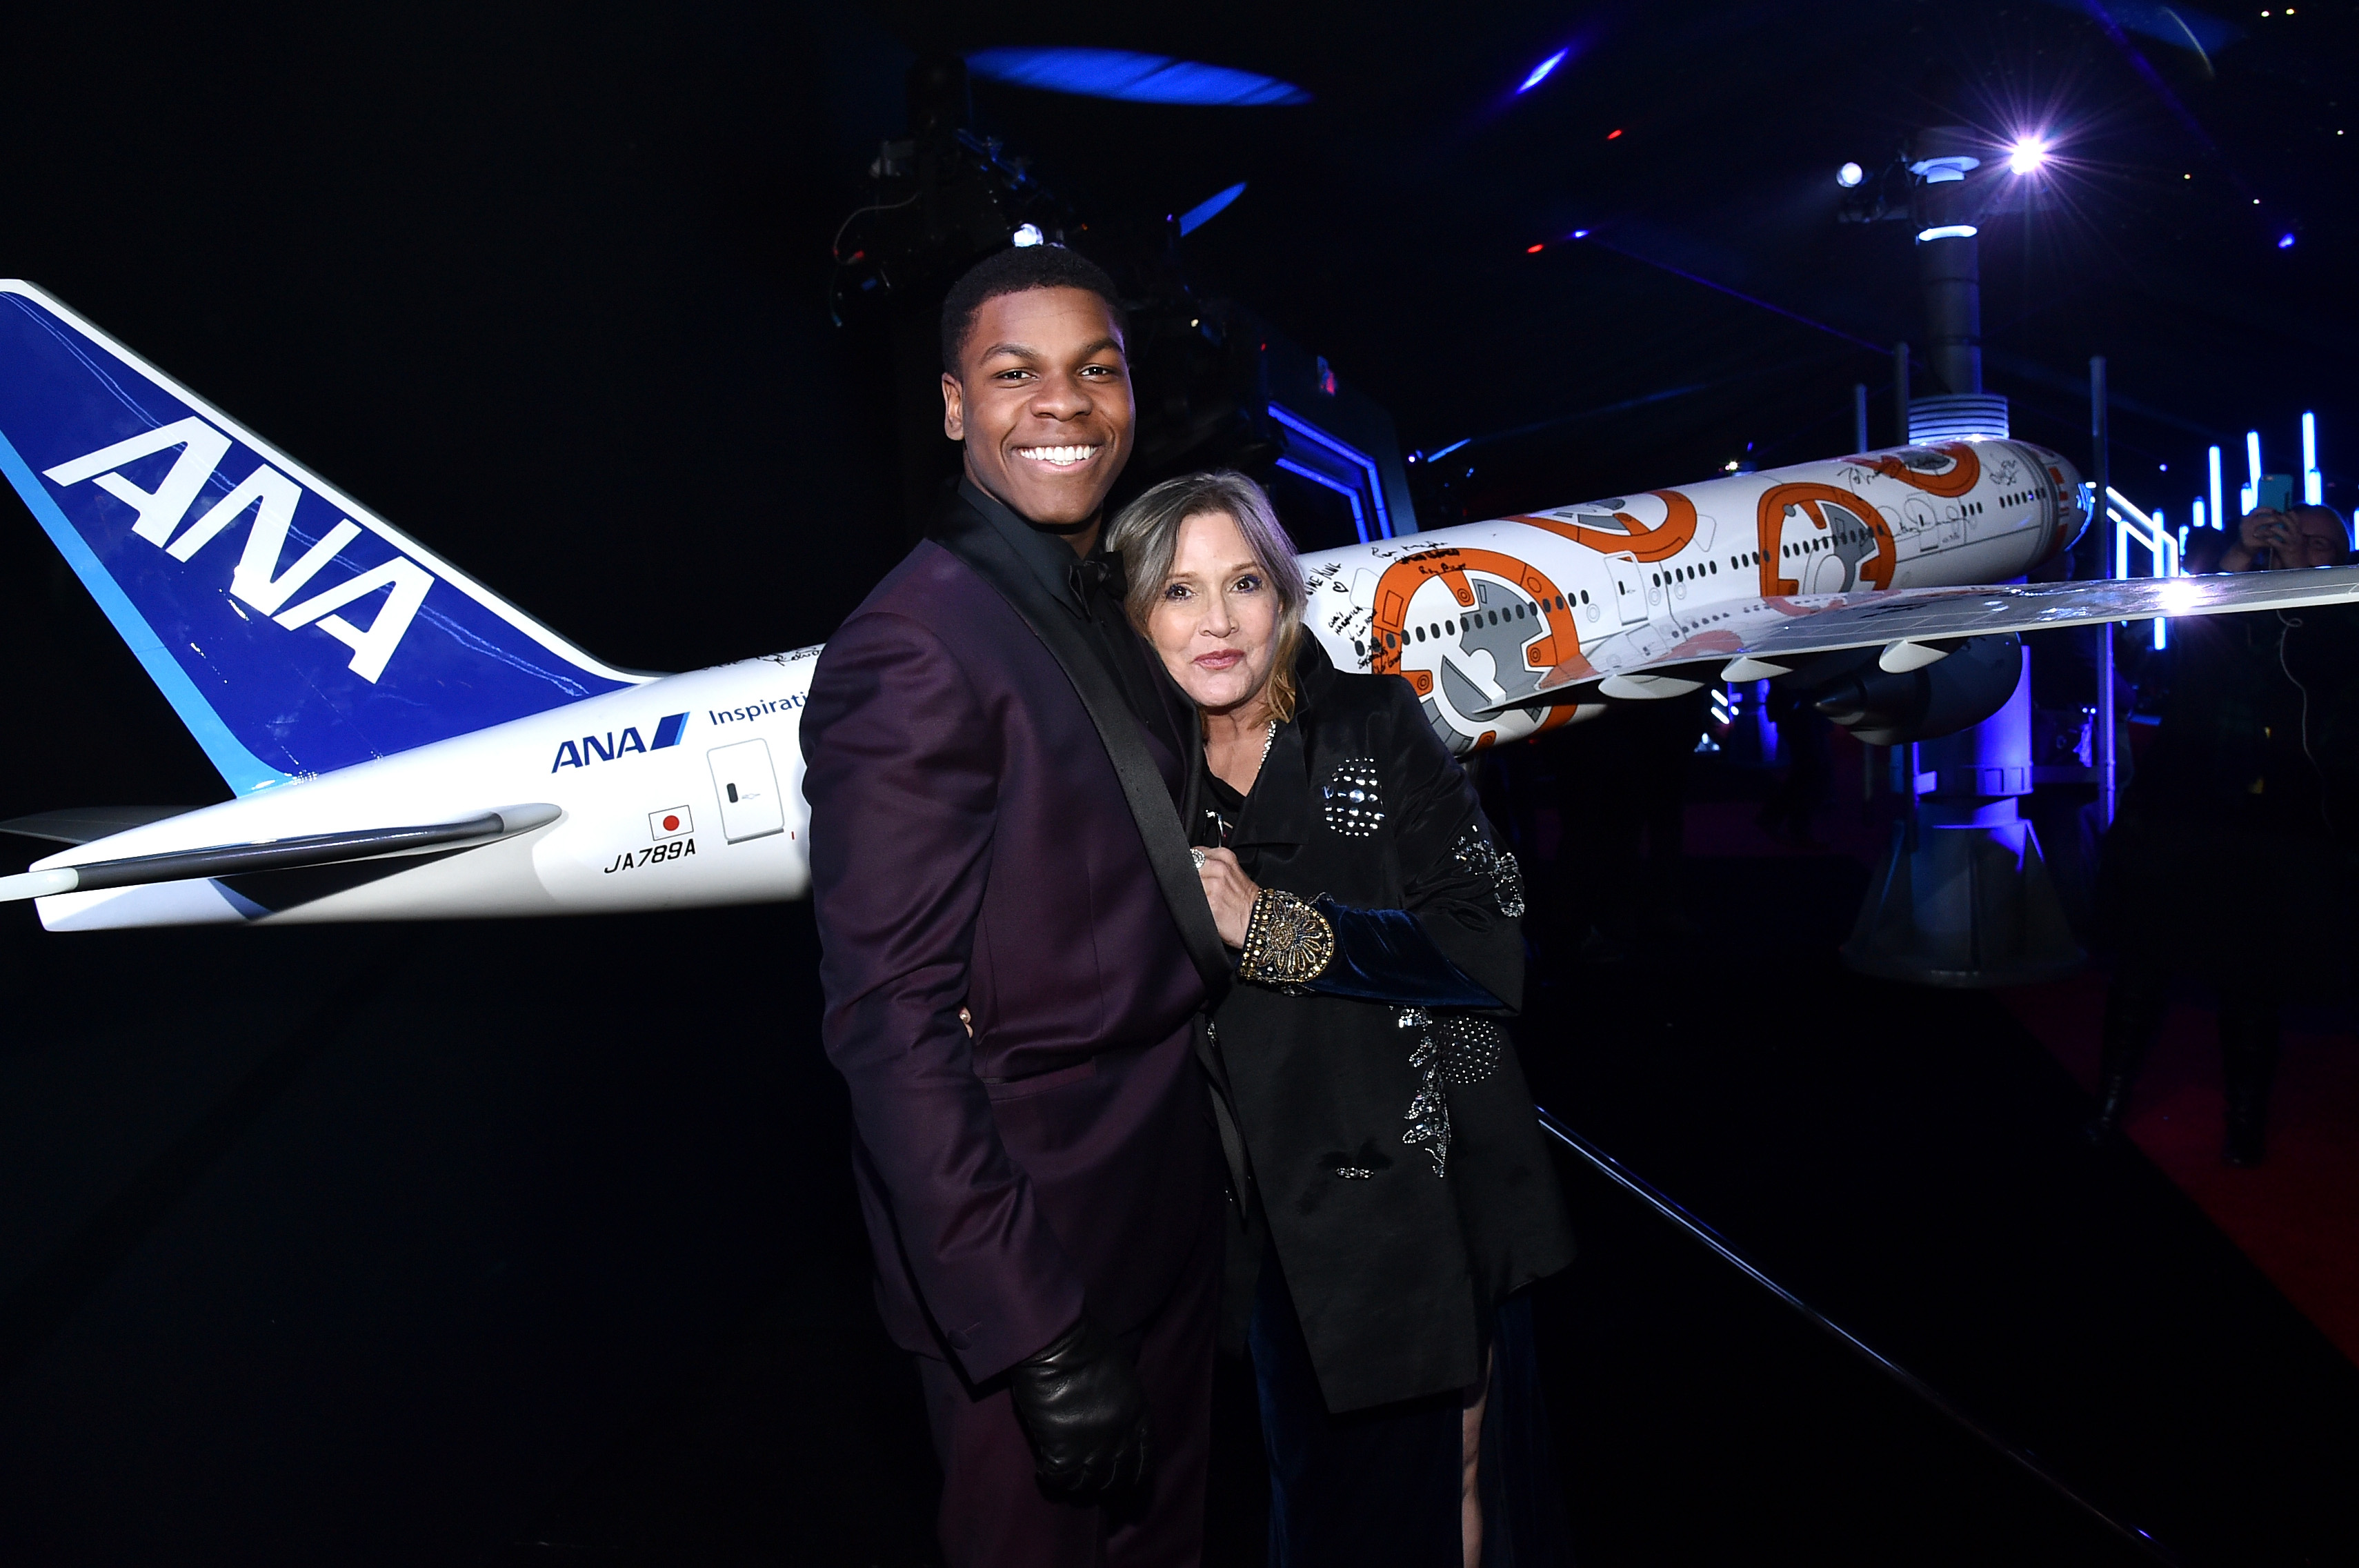 John Boyega just shared a touching Instagram tribute to Carrie Fisher, and our hearts are heavy again